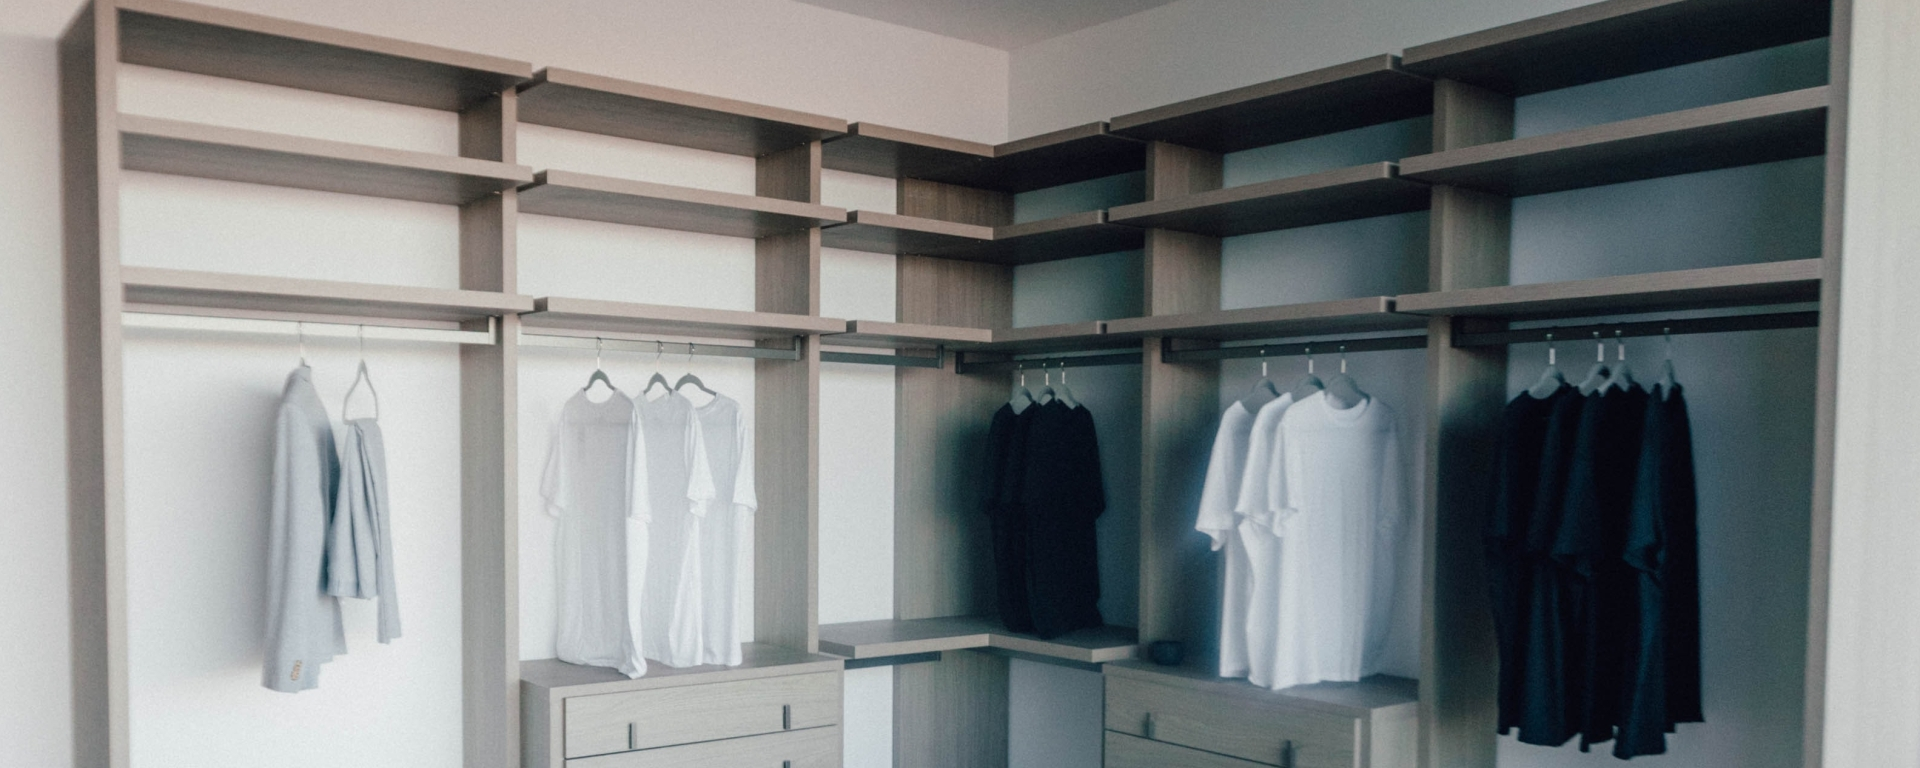 An image of an open closet unit with monochrome clothing on hangers.